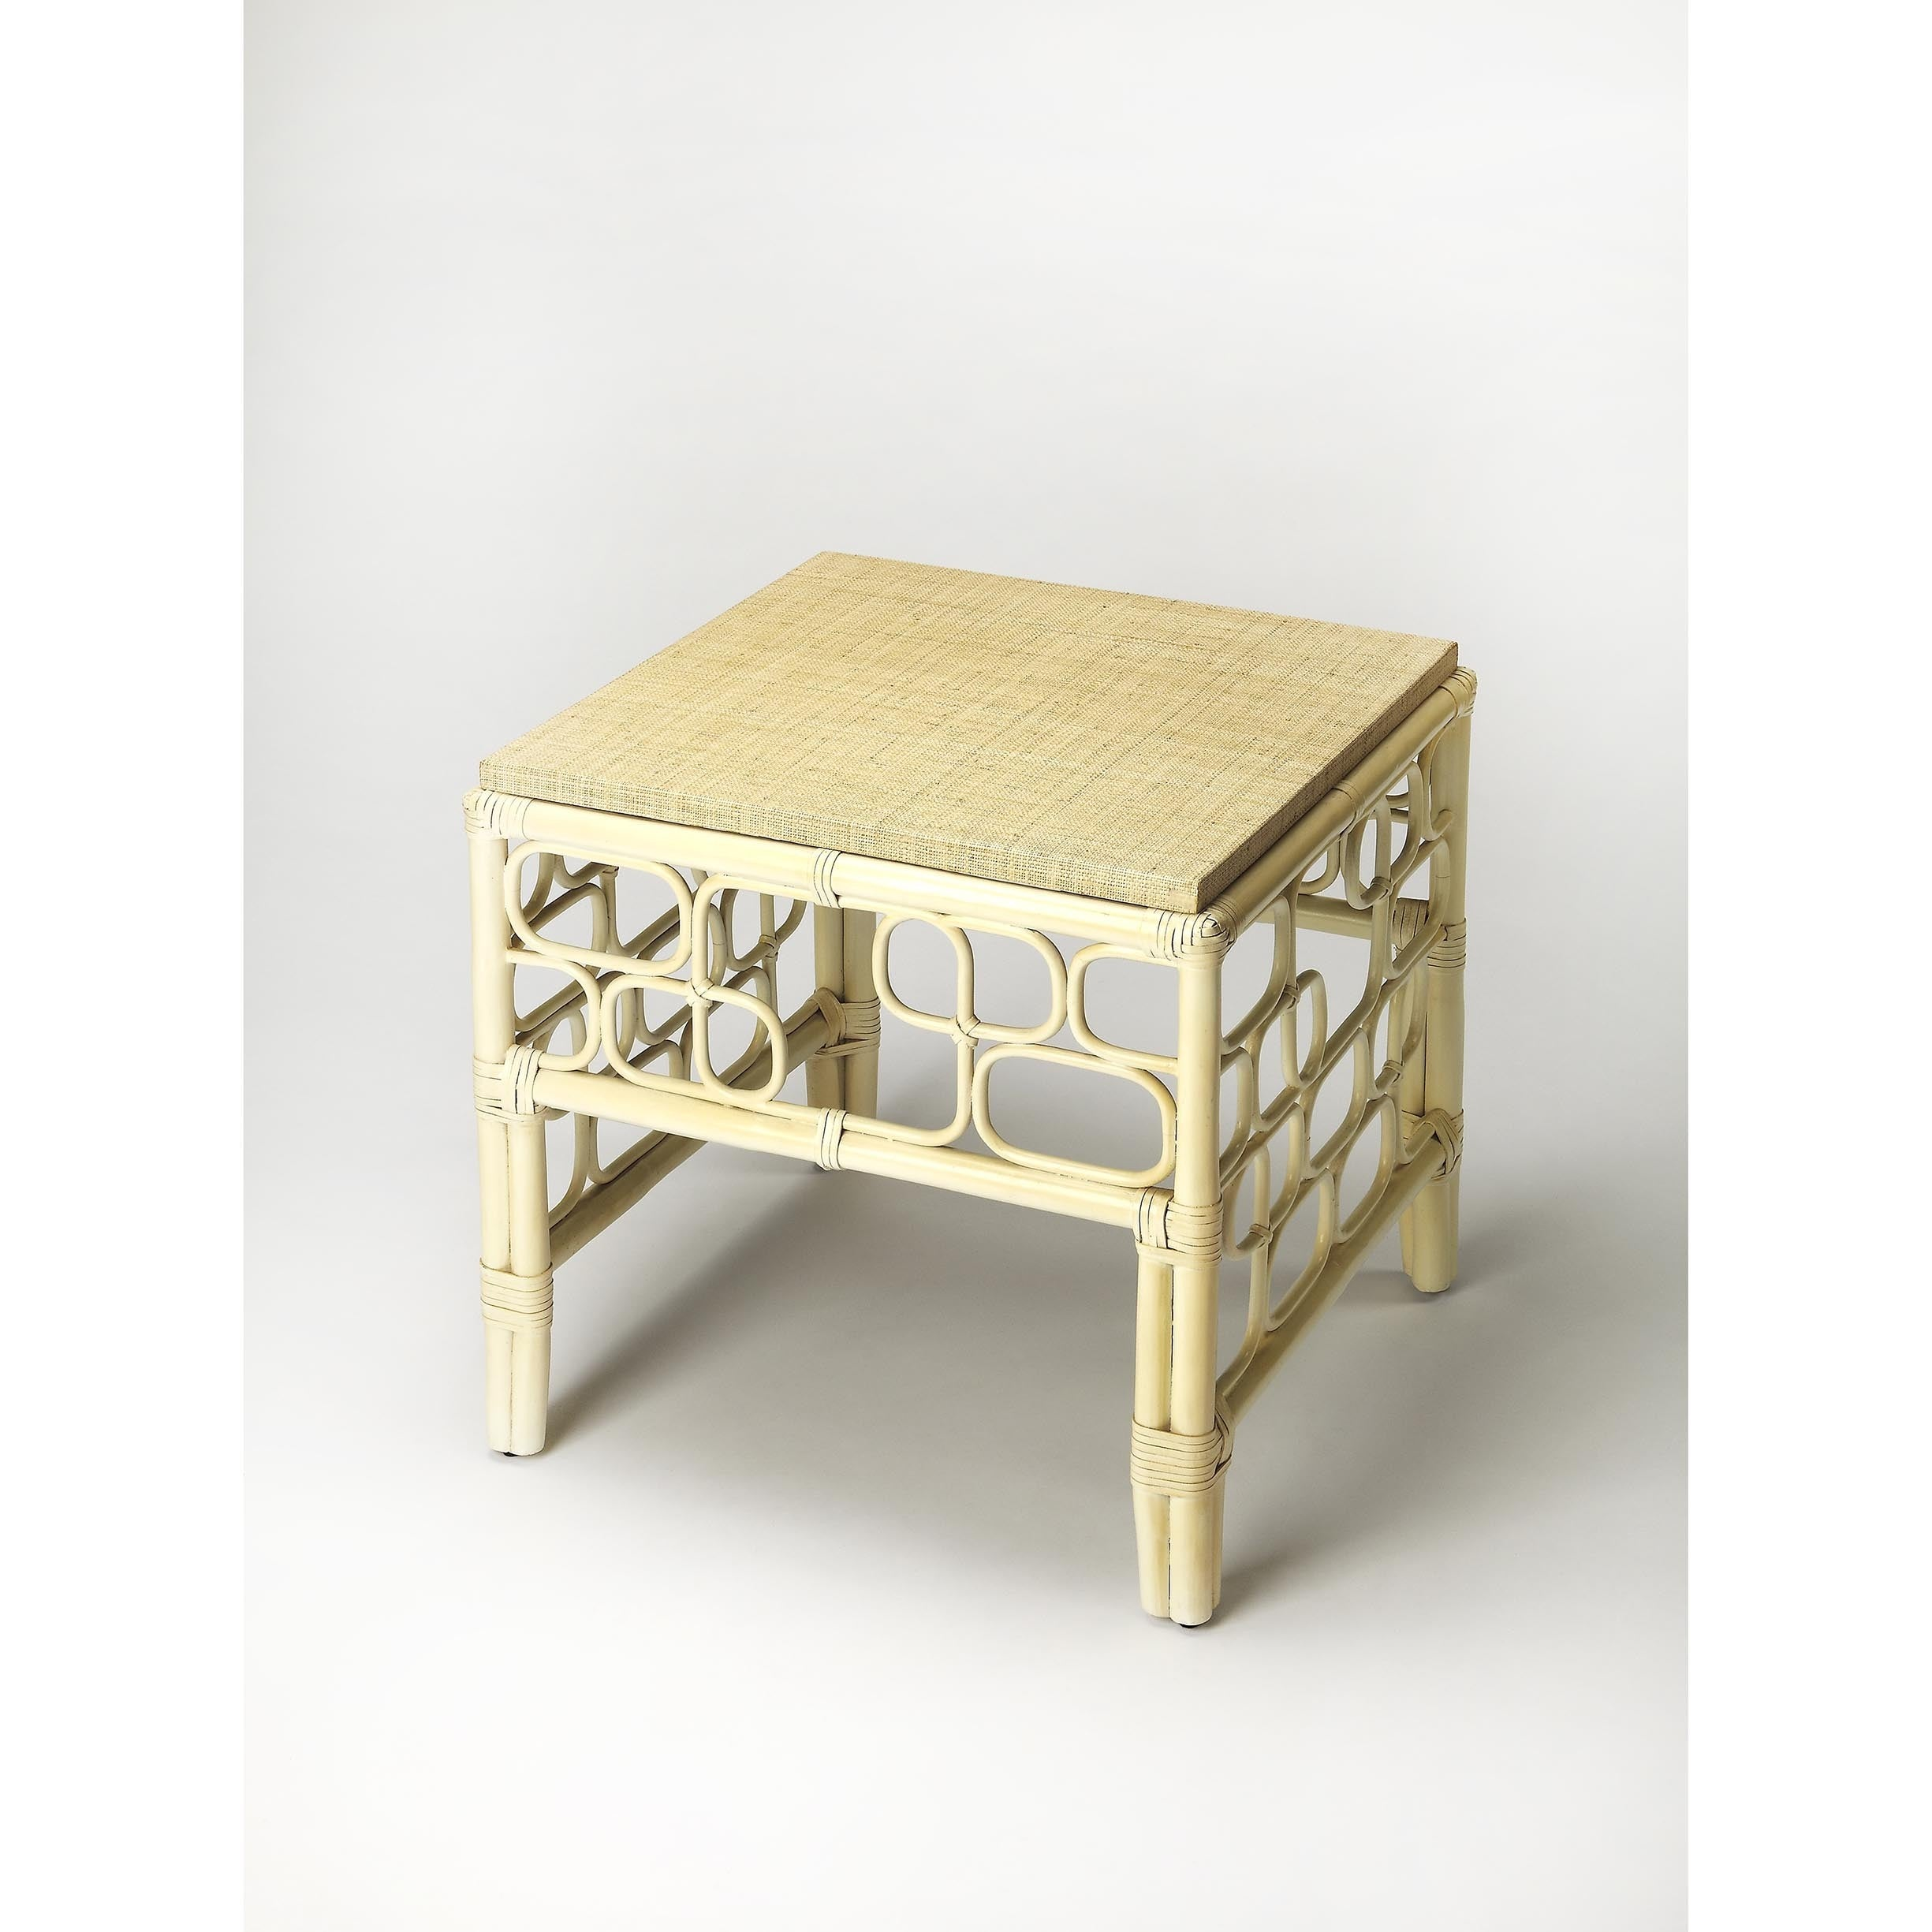 Strange Handmade Butler Althea Beige Mdf Rattan End Table Philippines Pdpeps Interior Chair Design Pdpepsorg